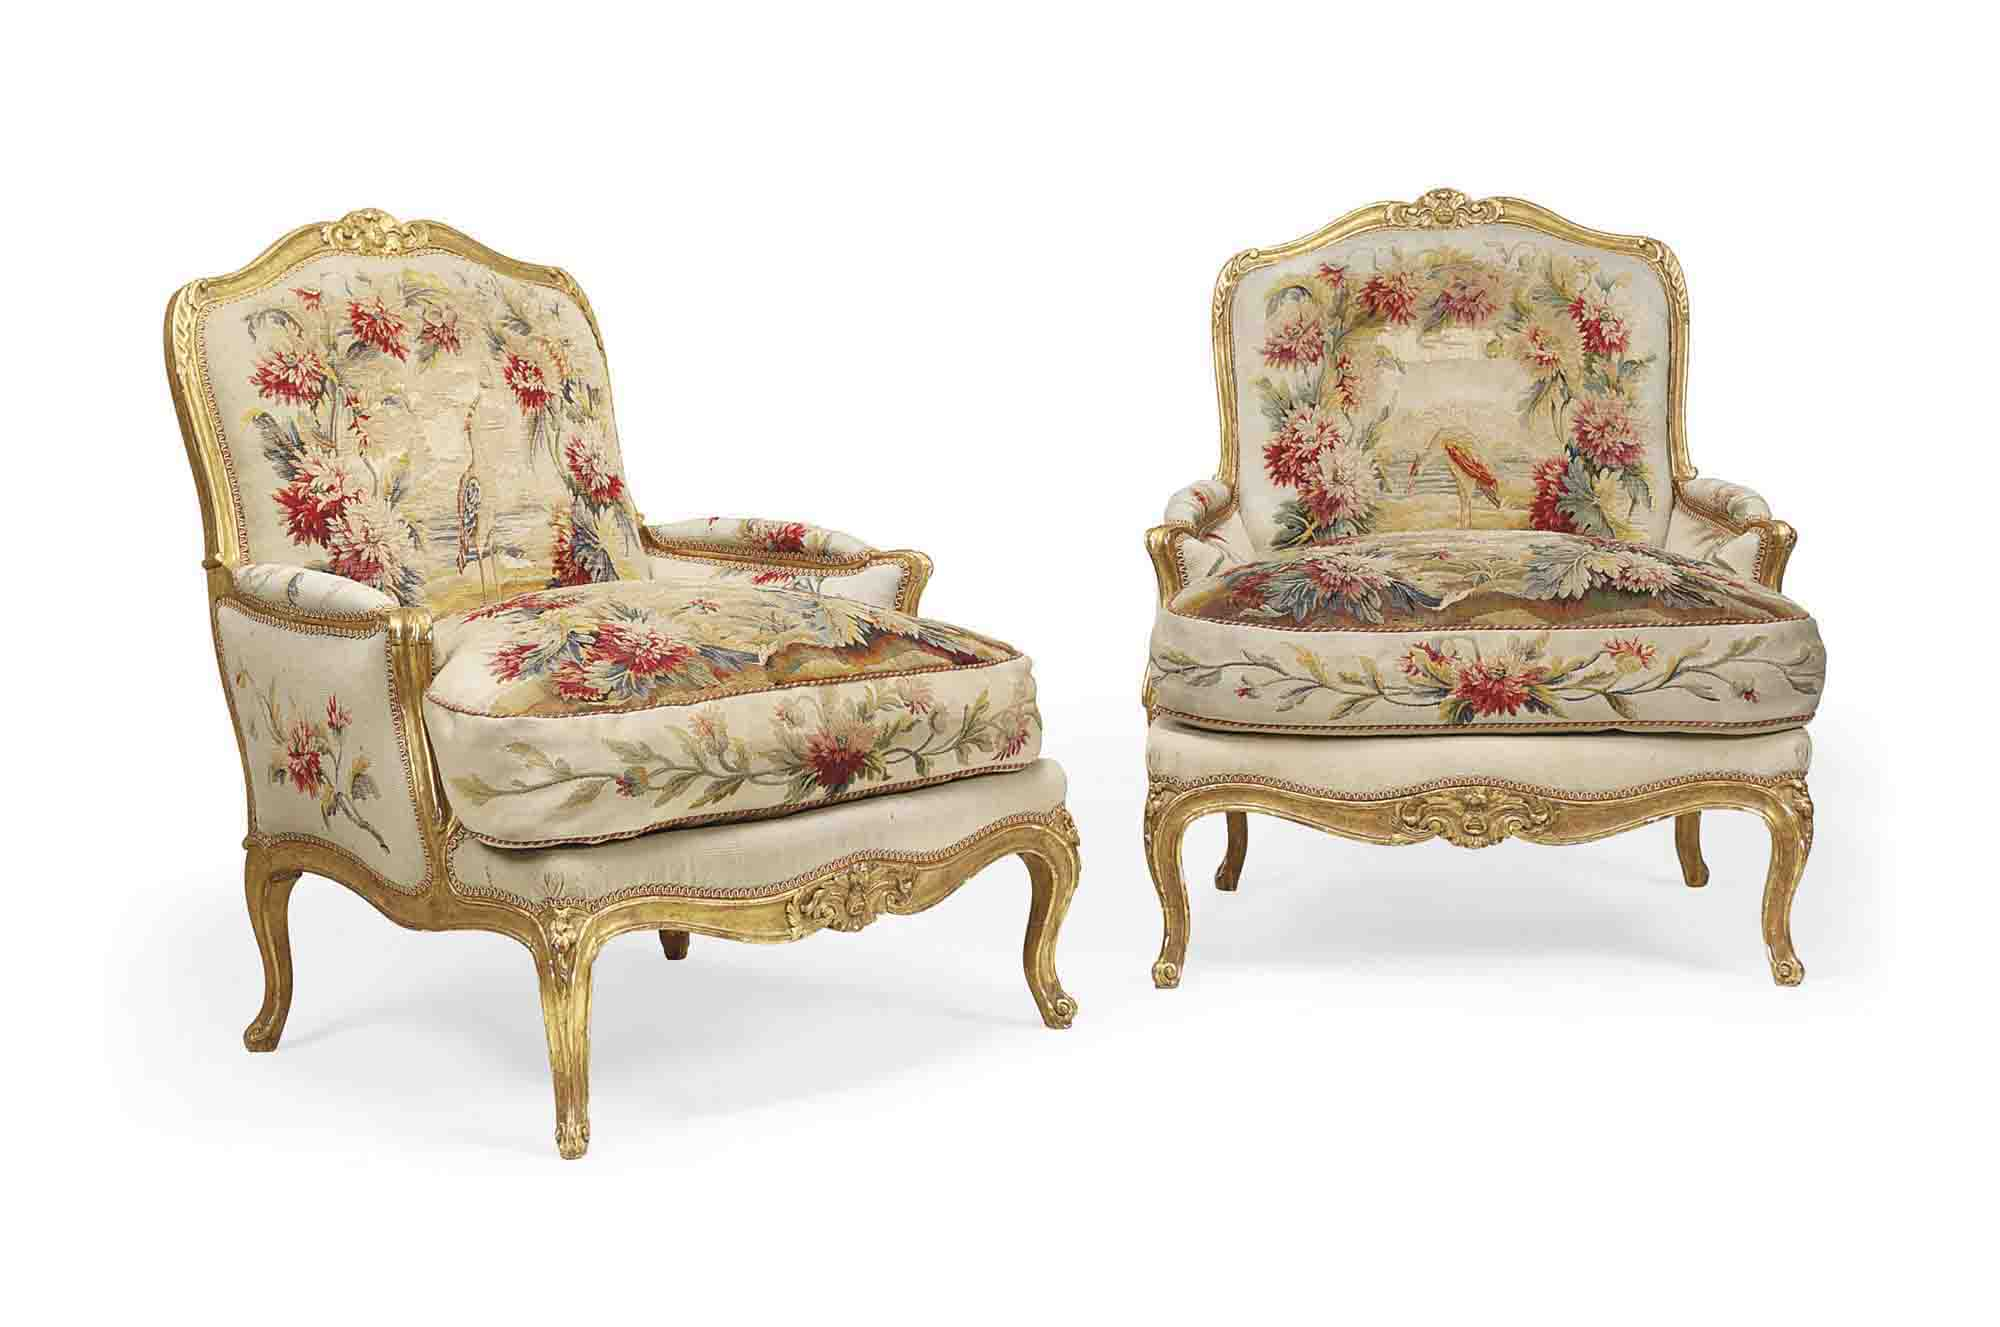 A PAIR OF LOUIS XV STYLE TAPESTRY COVERED GILTWOOD BERGERES